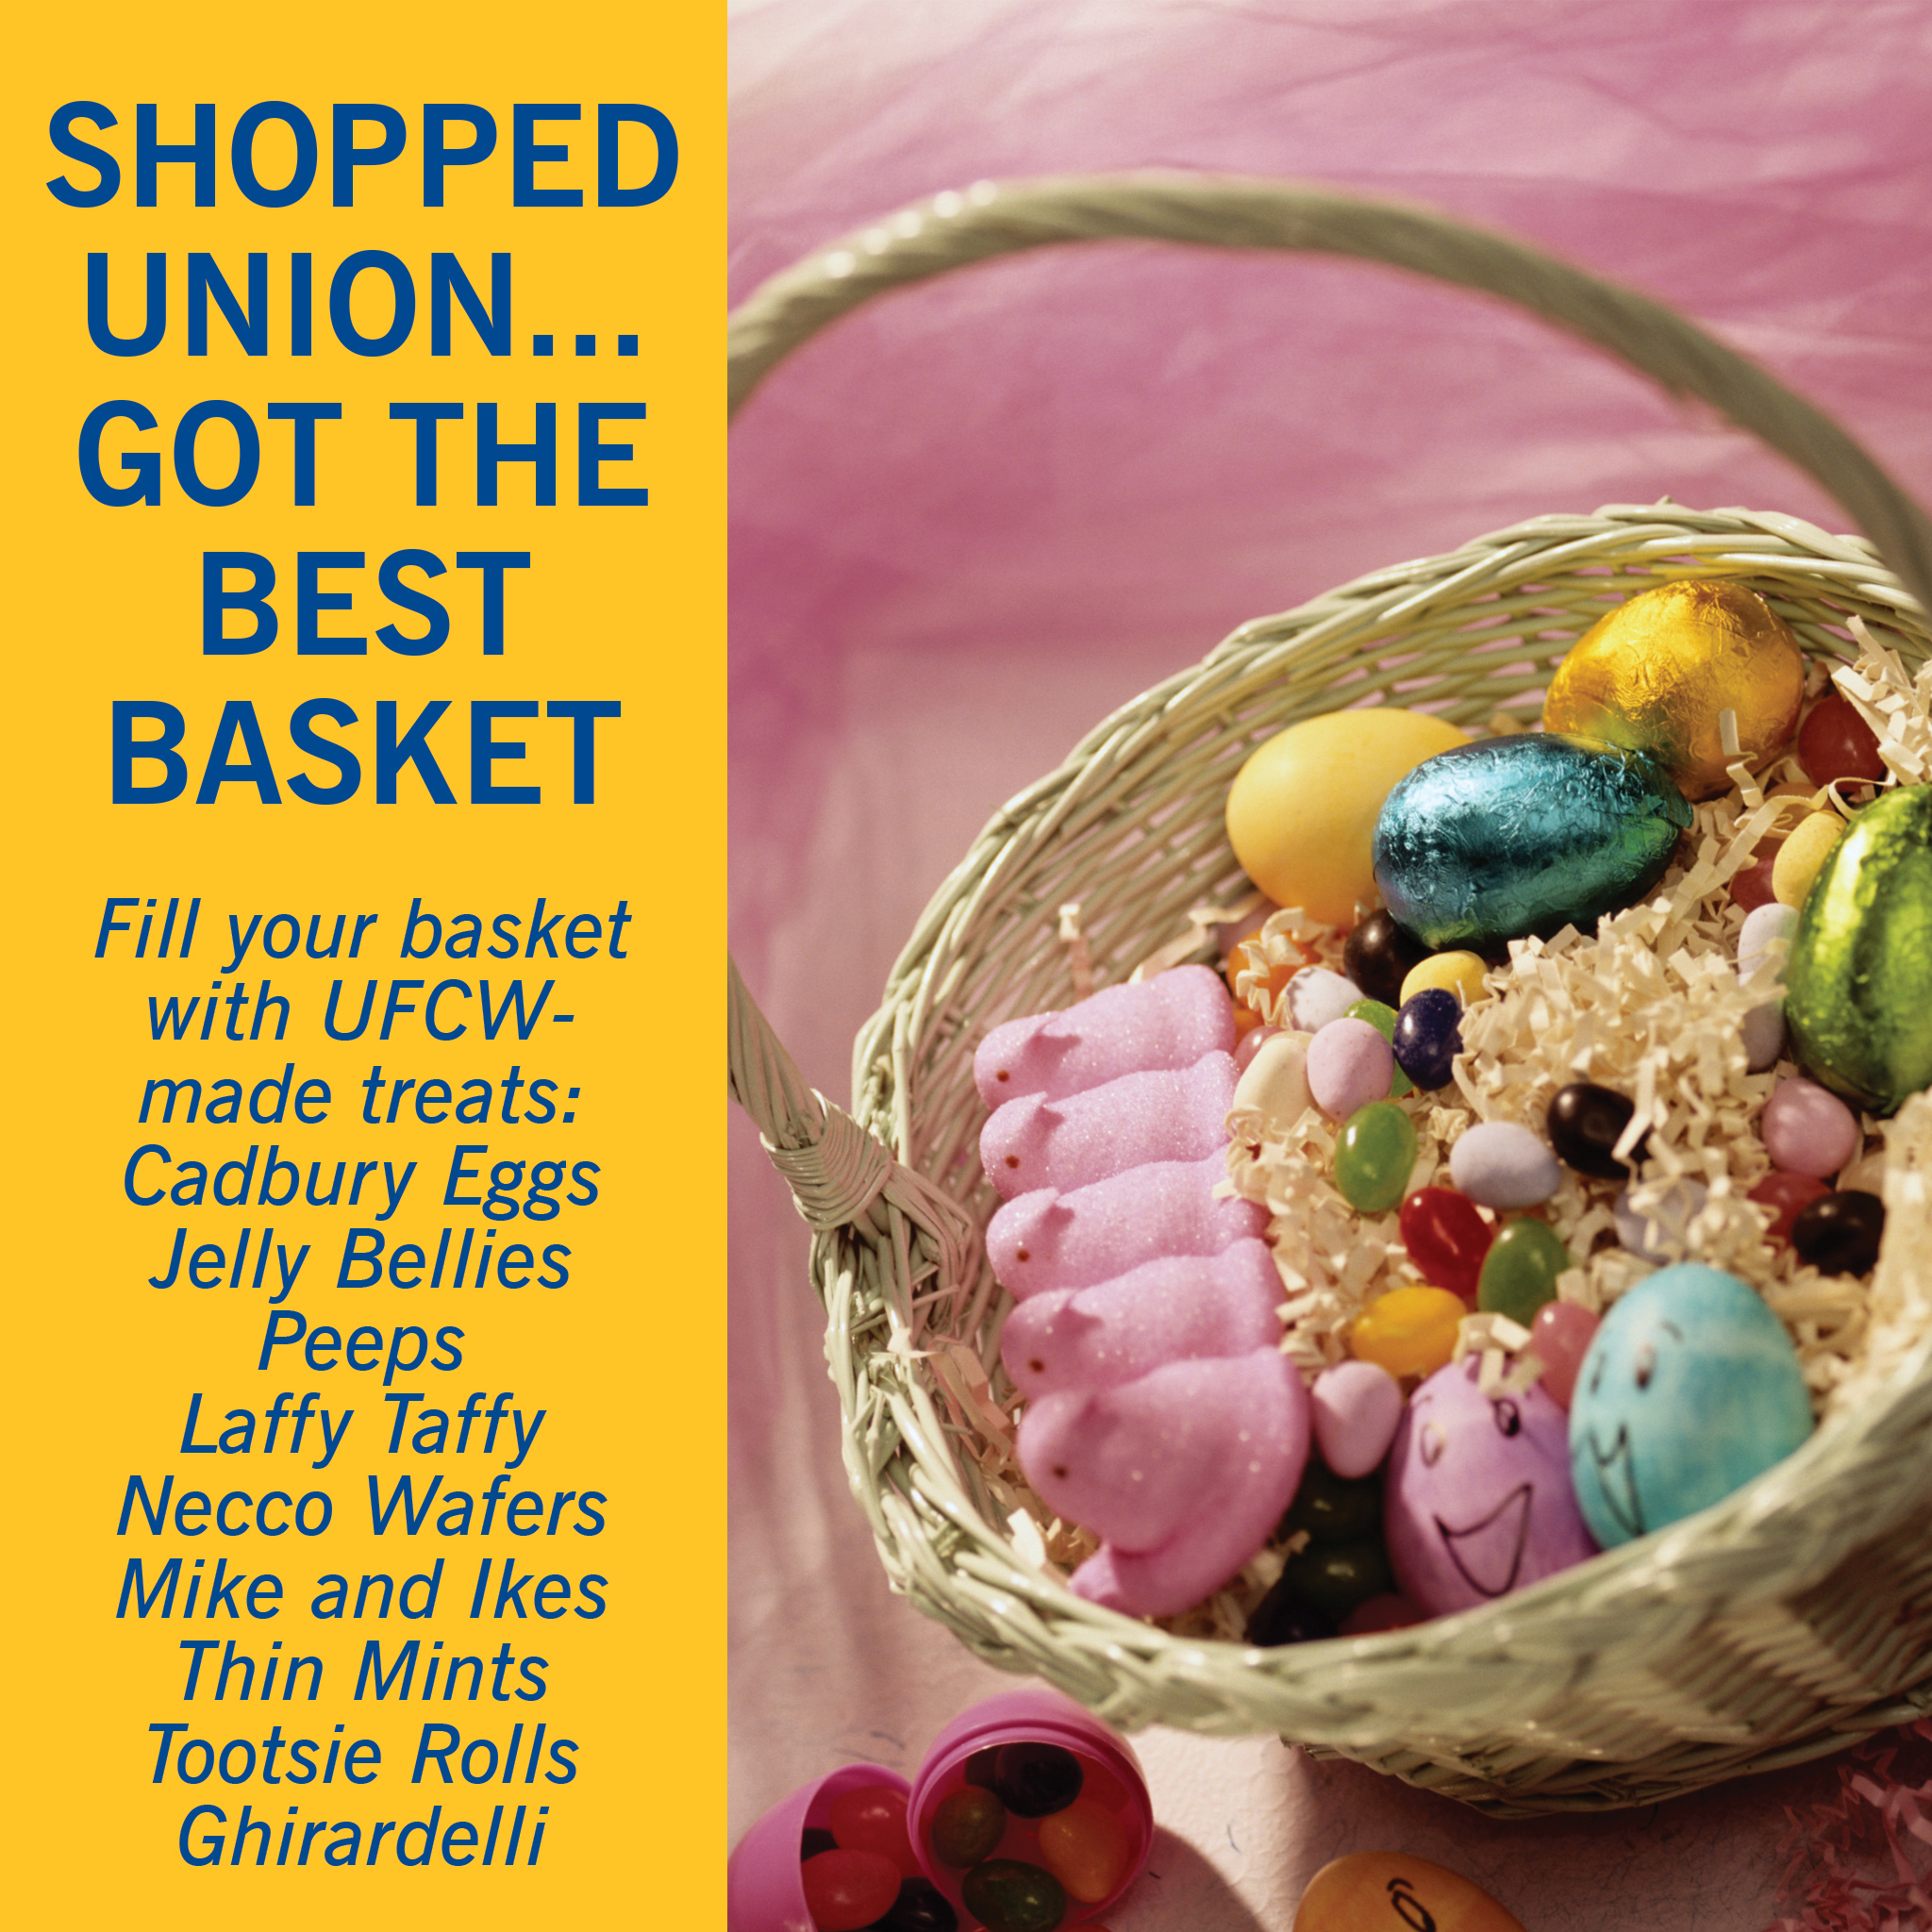 Shopped-Union-Got-Best-Basket